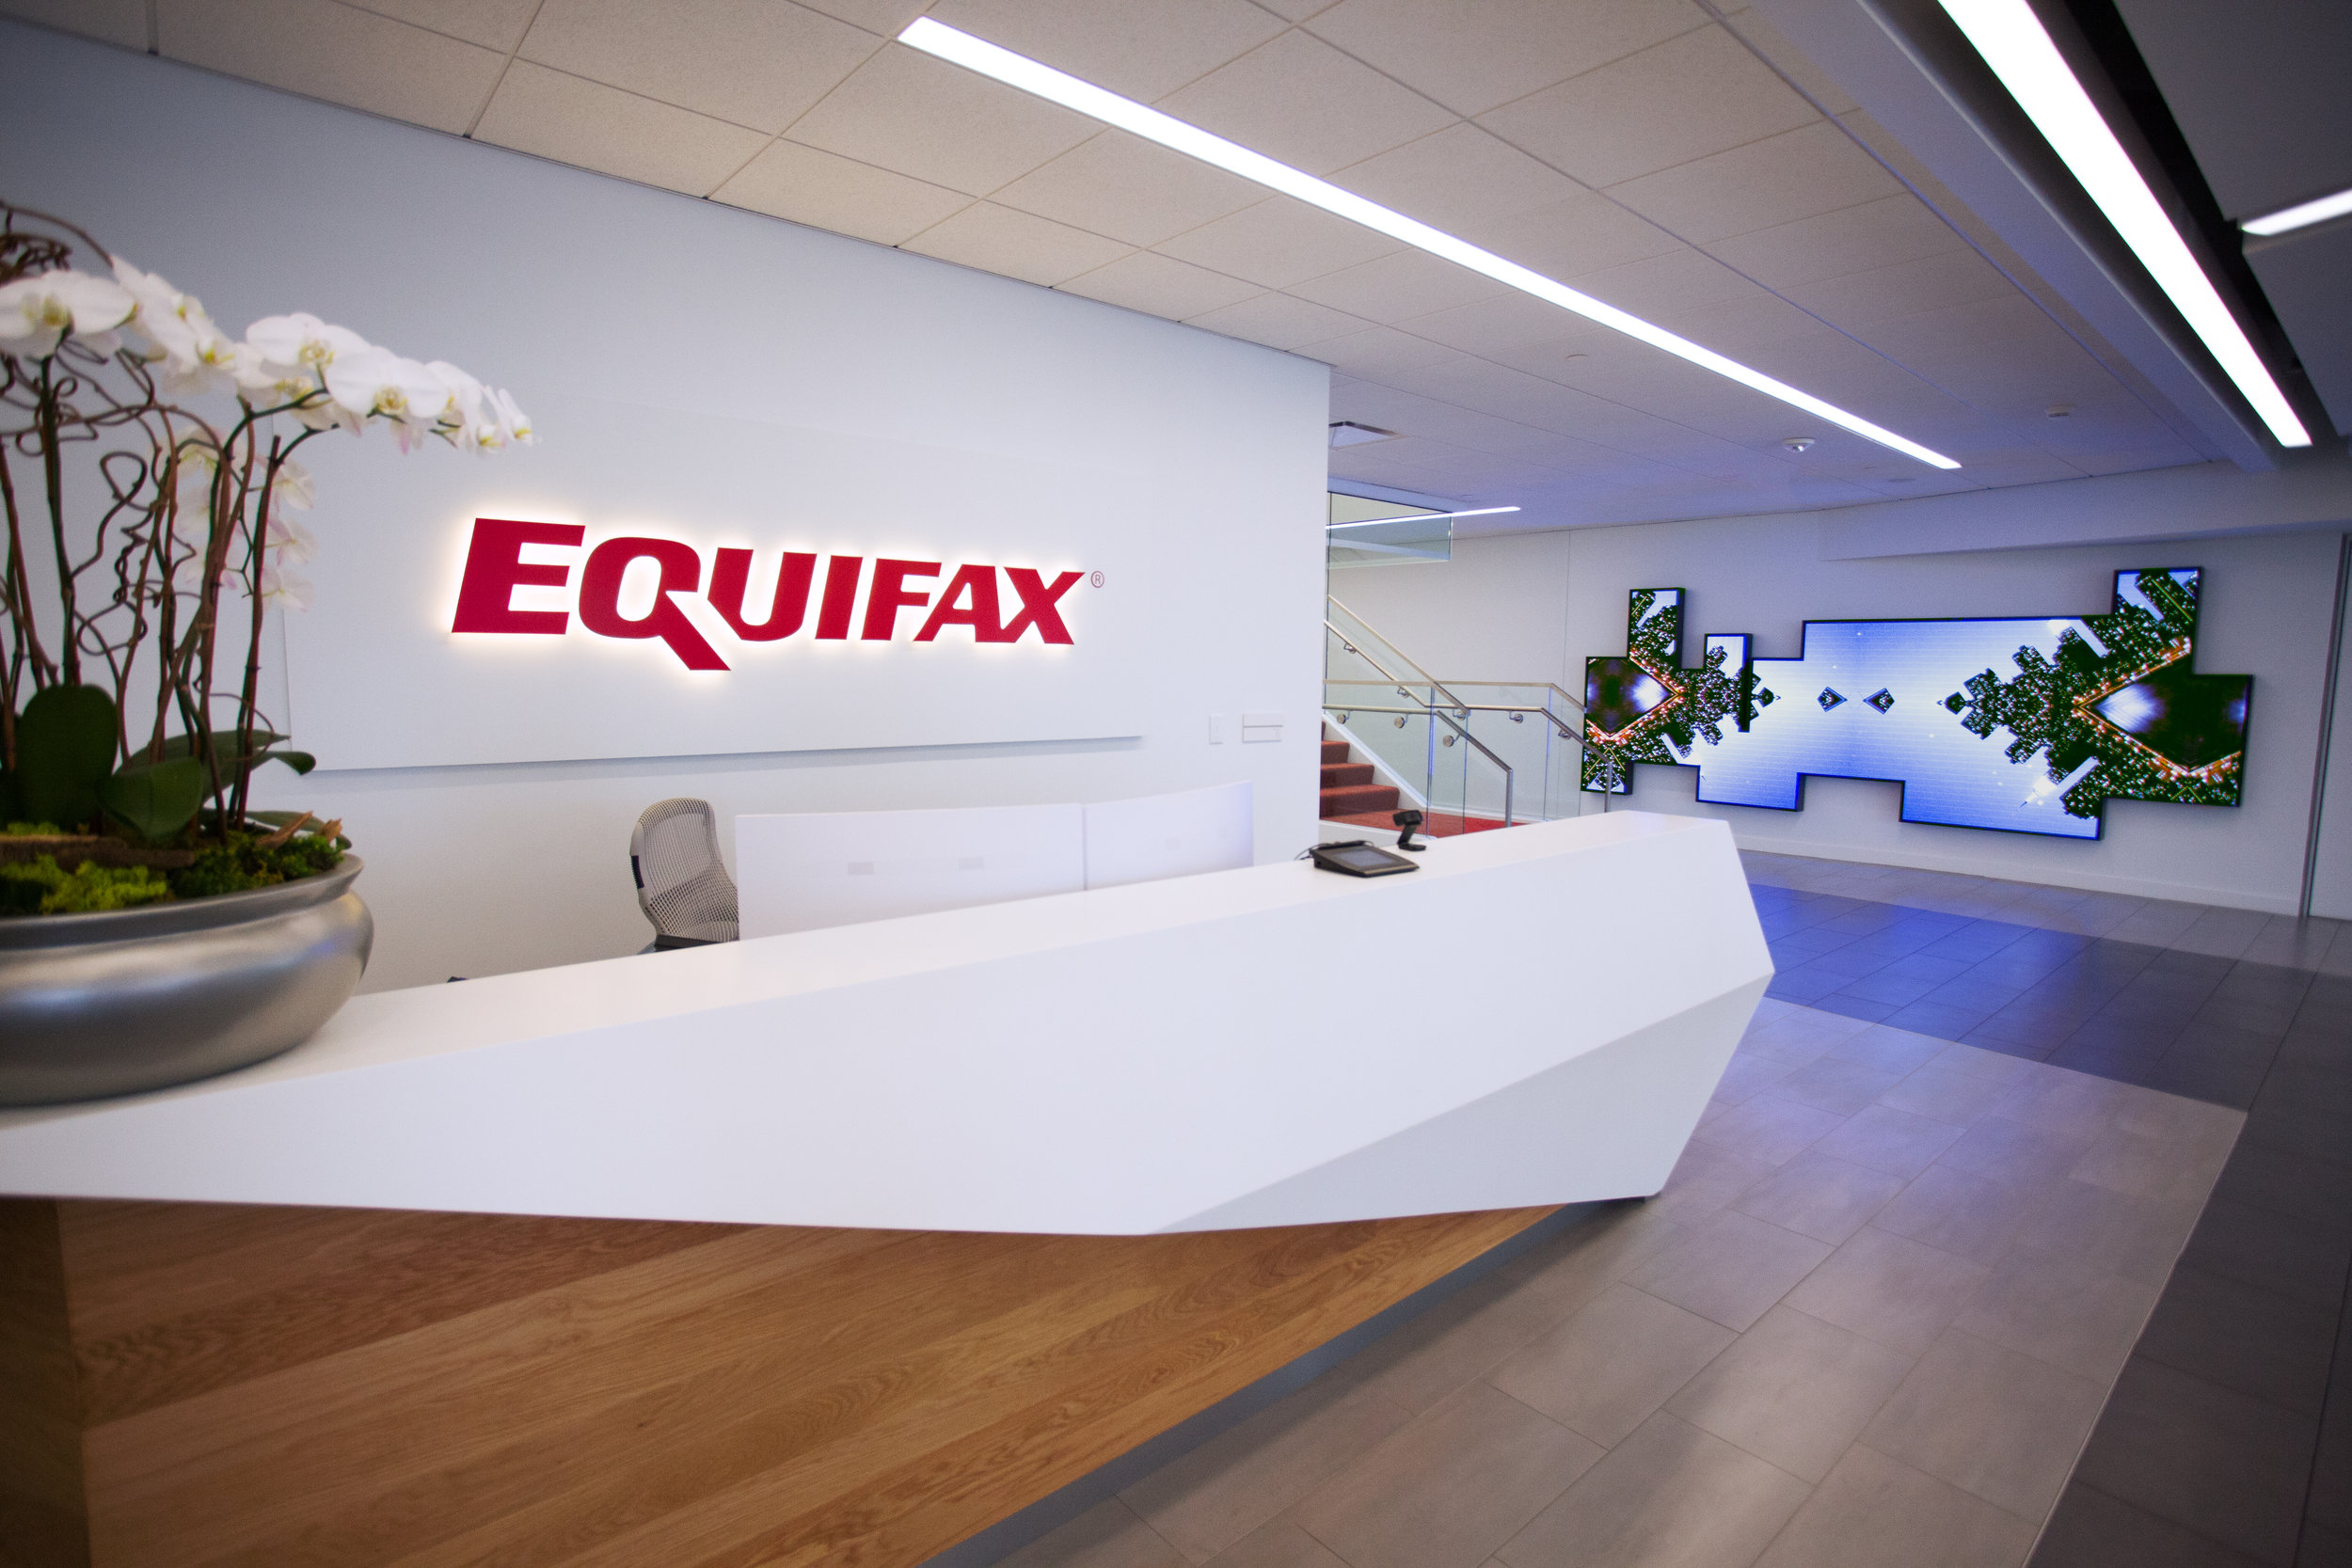 *Equifax_cover.jpg